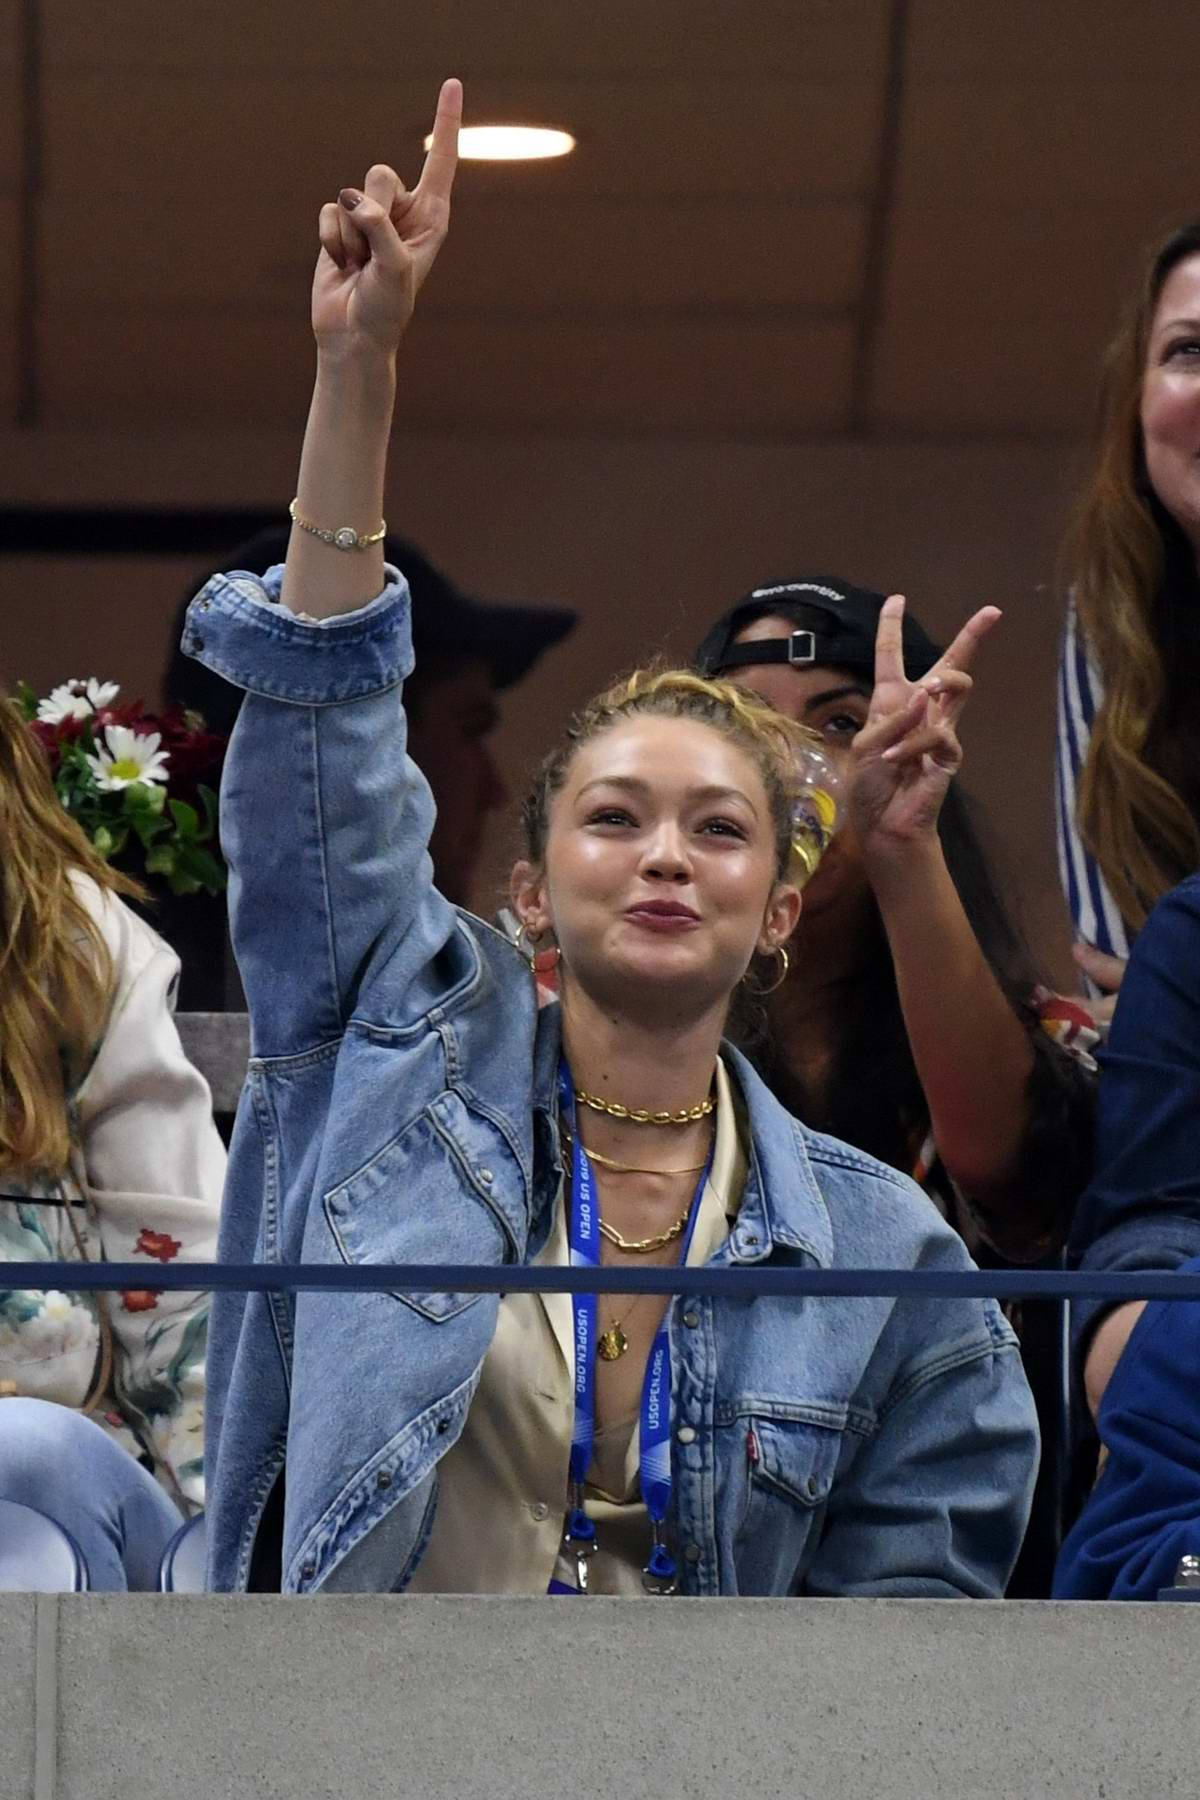 Gigi Hadid attends Serena Williams Vs Catherine McNally match during 2019 US Open at the Flushing Meadows, New York City